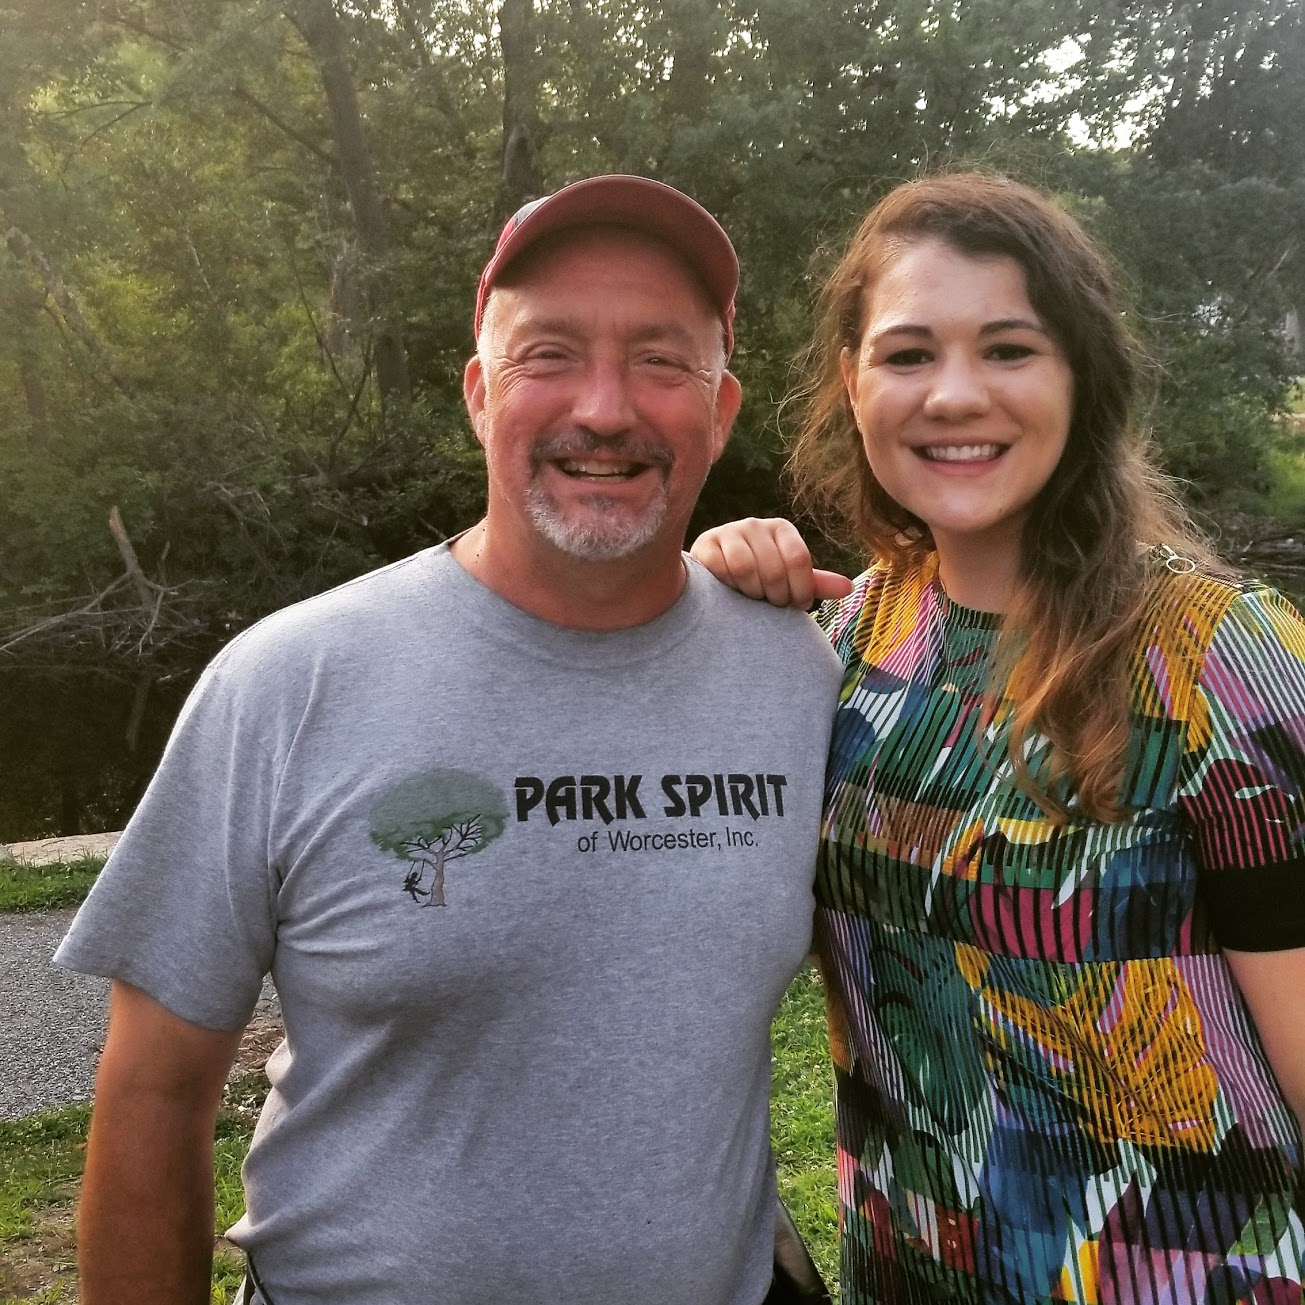 My dad and I at the Elm Park Summer Concert on July 12th, 2018